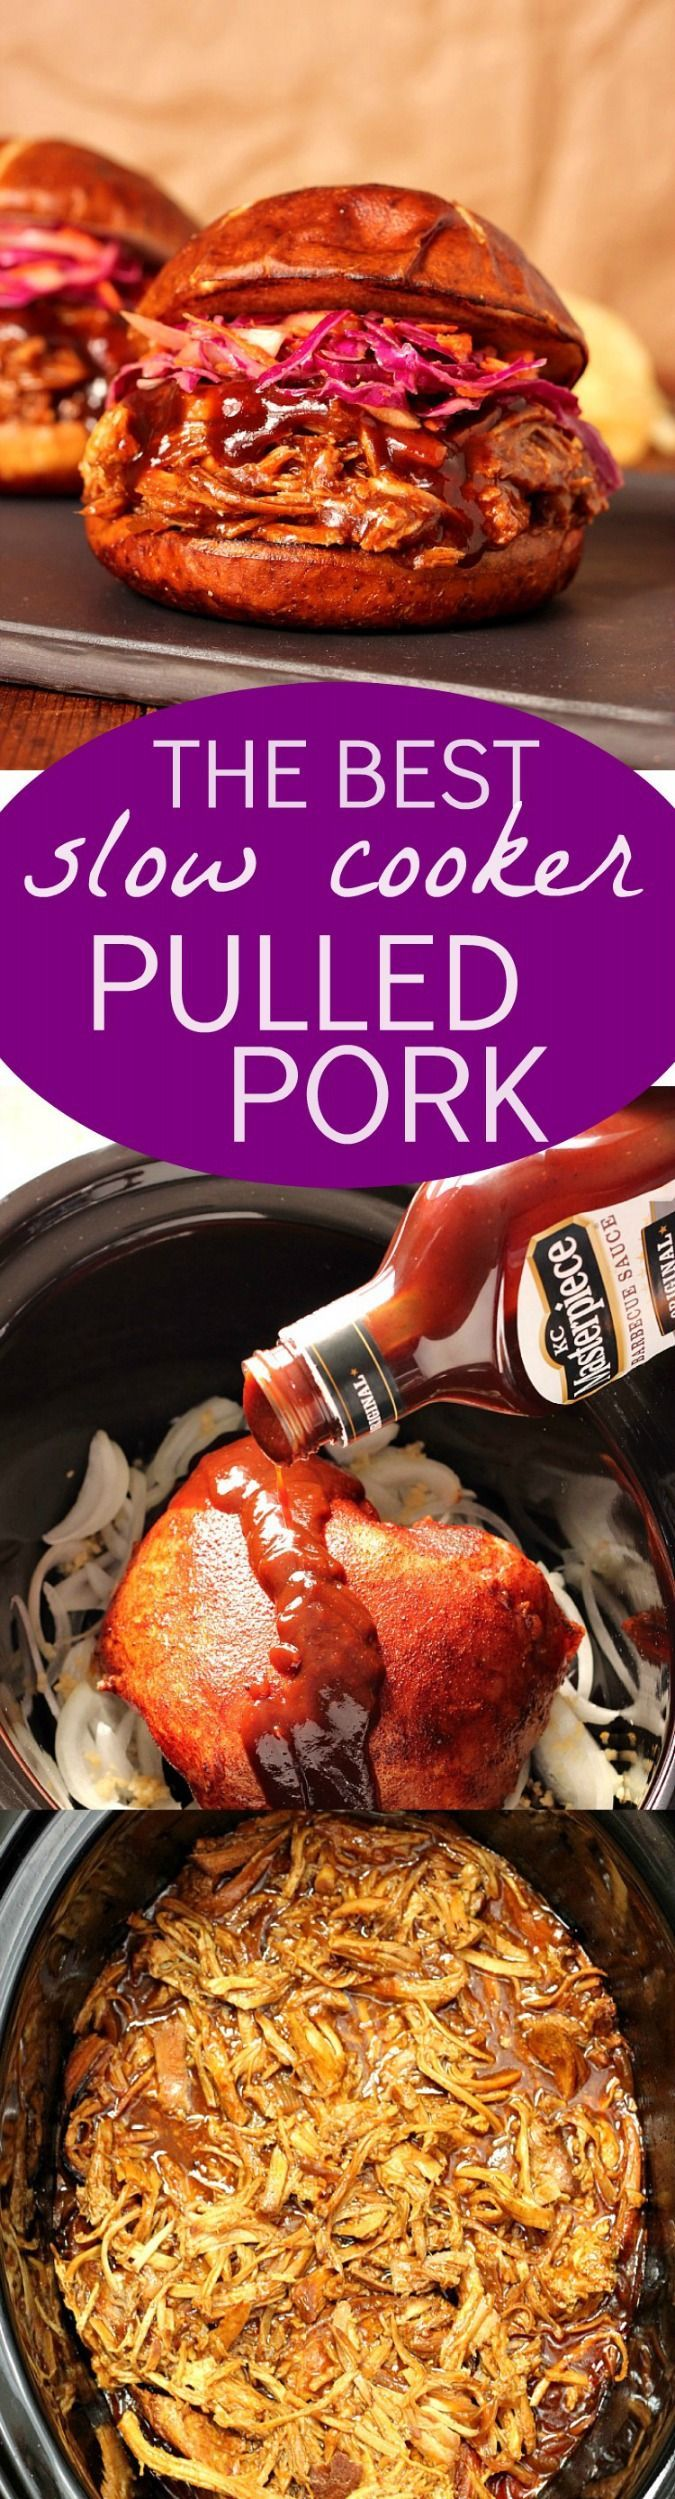 The Best Slow Cooker Pulled Pork - with just a few ingredients and minimal prep time you can make the best pulled pork right in your slow cooker! A side of red cabbage and apple slaw is all you need to make it into one delicious dinner!